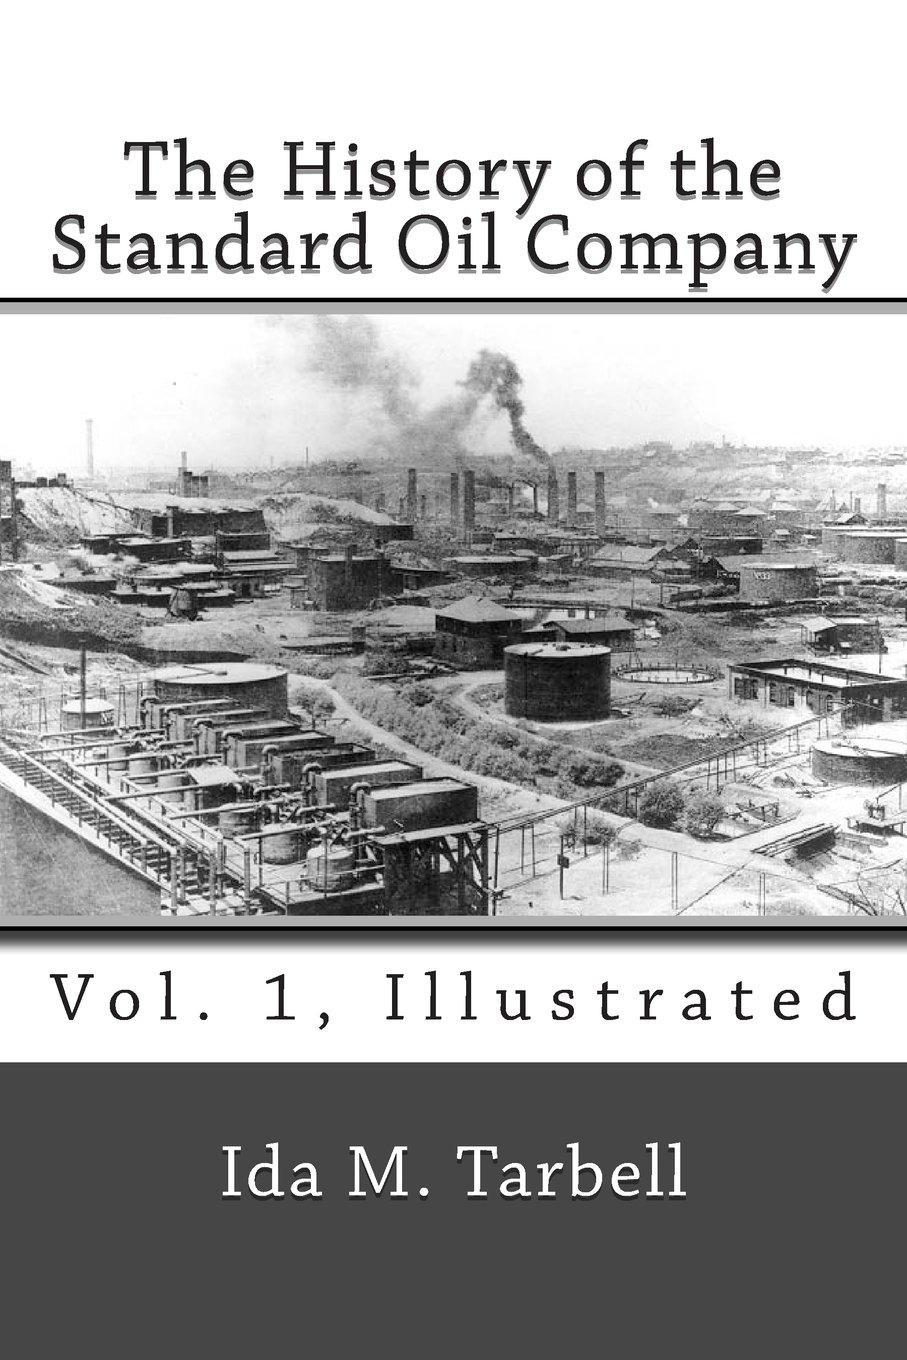 The History of the Standard Oil Company (Vol. 1, Illustrated) PDF